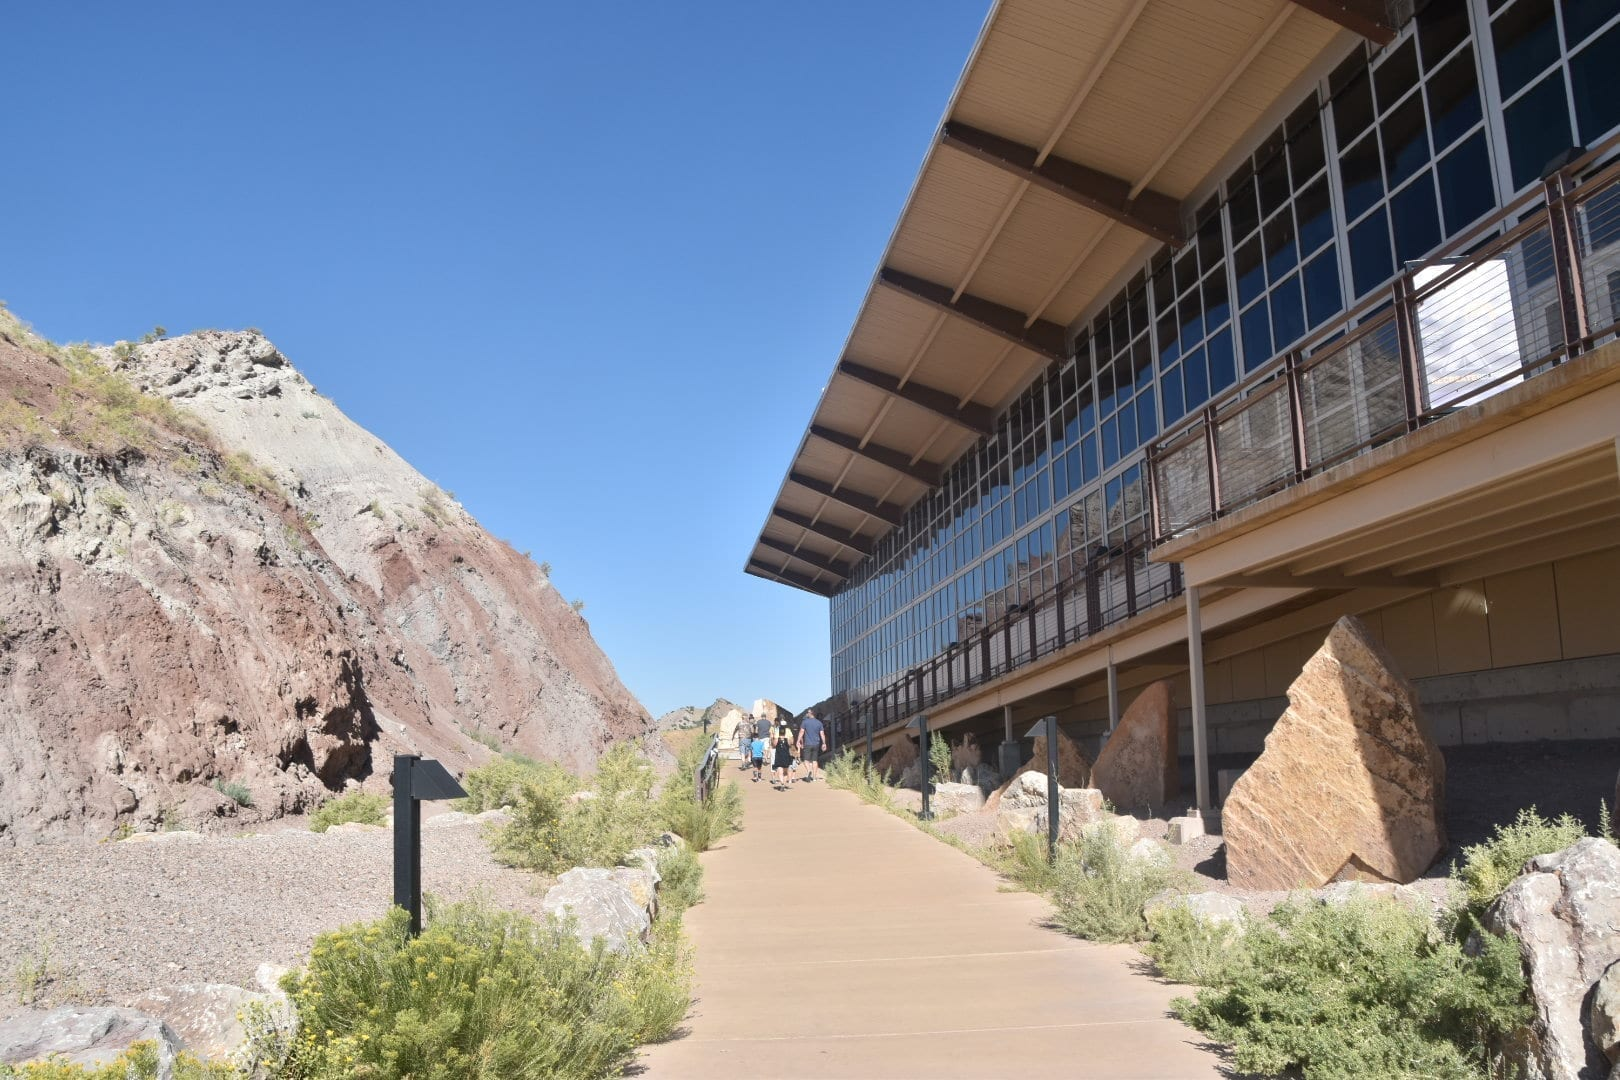 Visiting Dinosaur National Monument Quarry